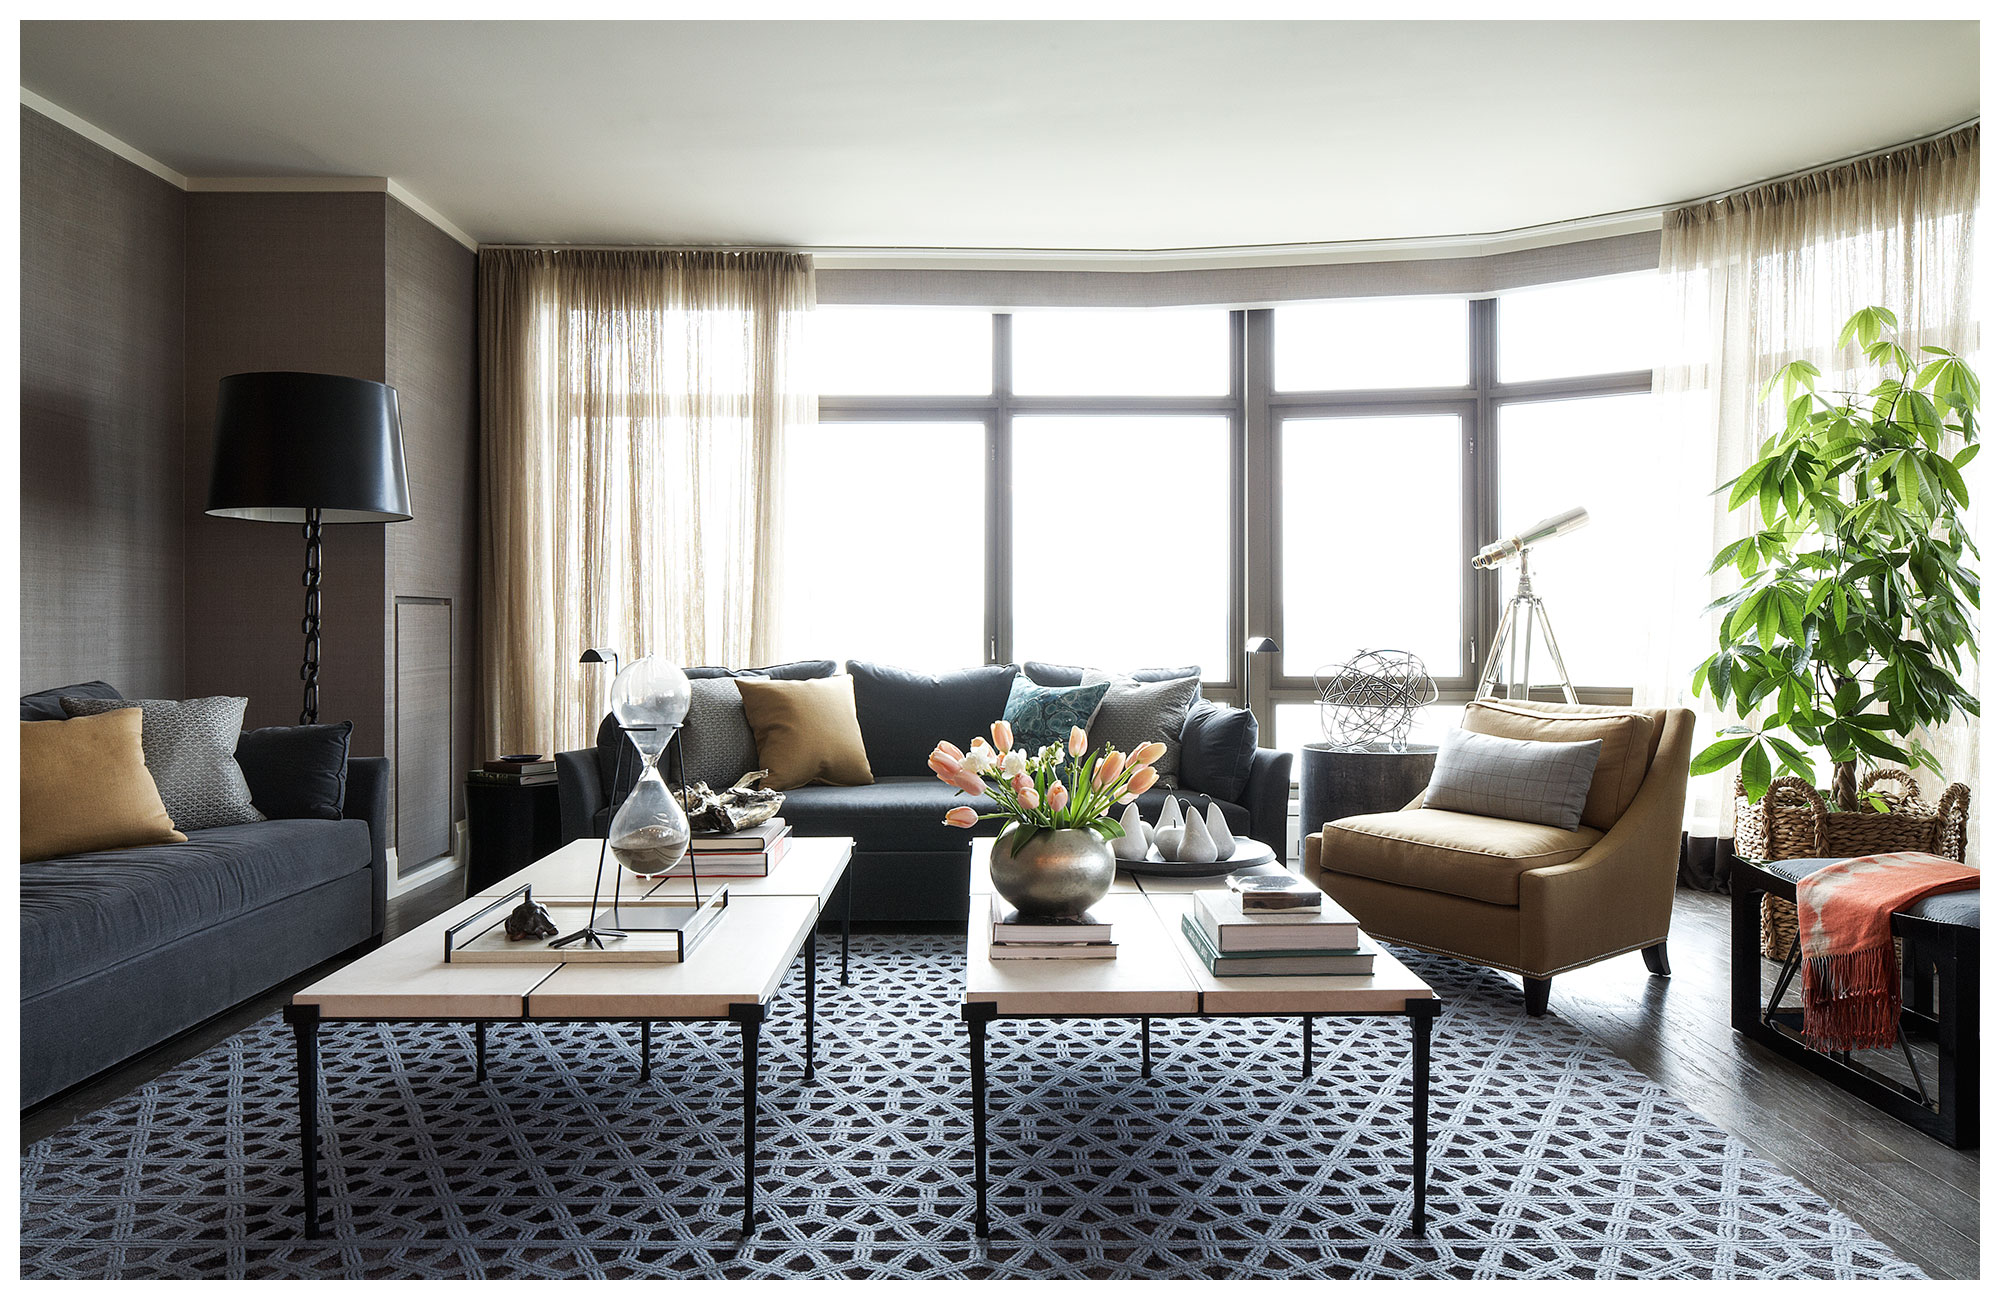 Interior | Thom Filicia | Brian Park Photo New York | 3